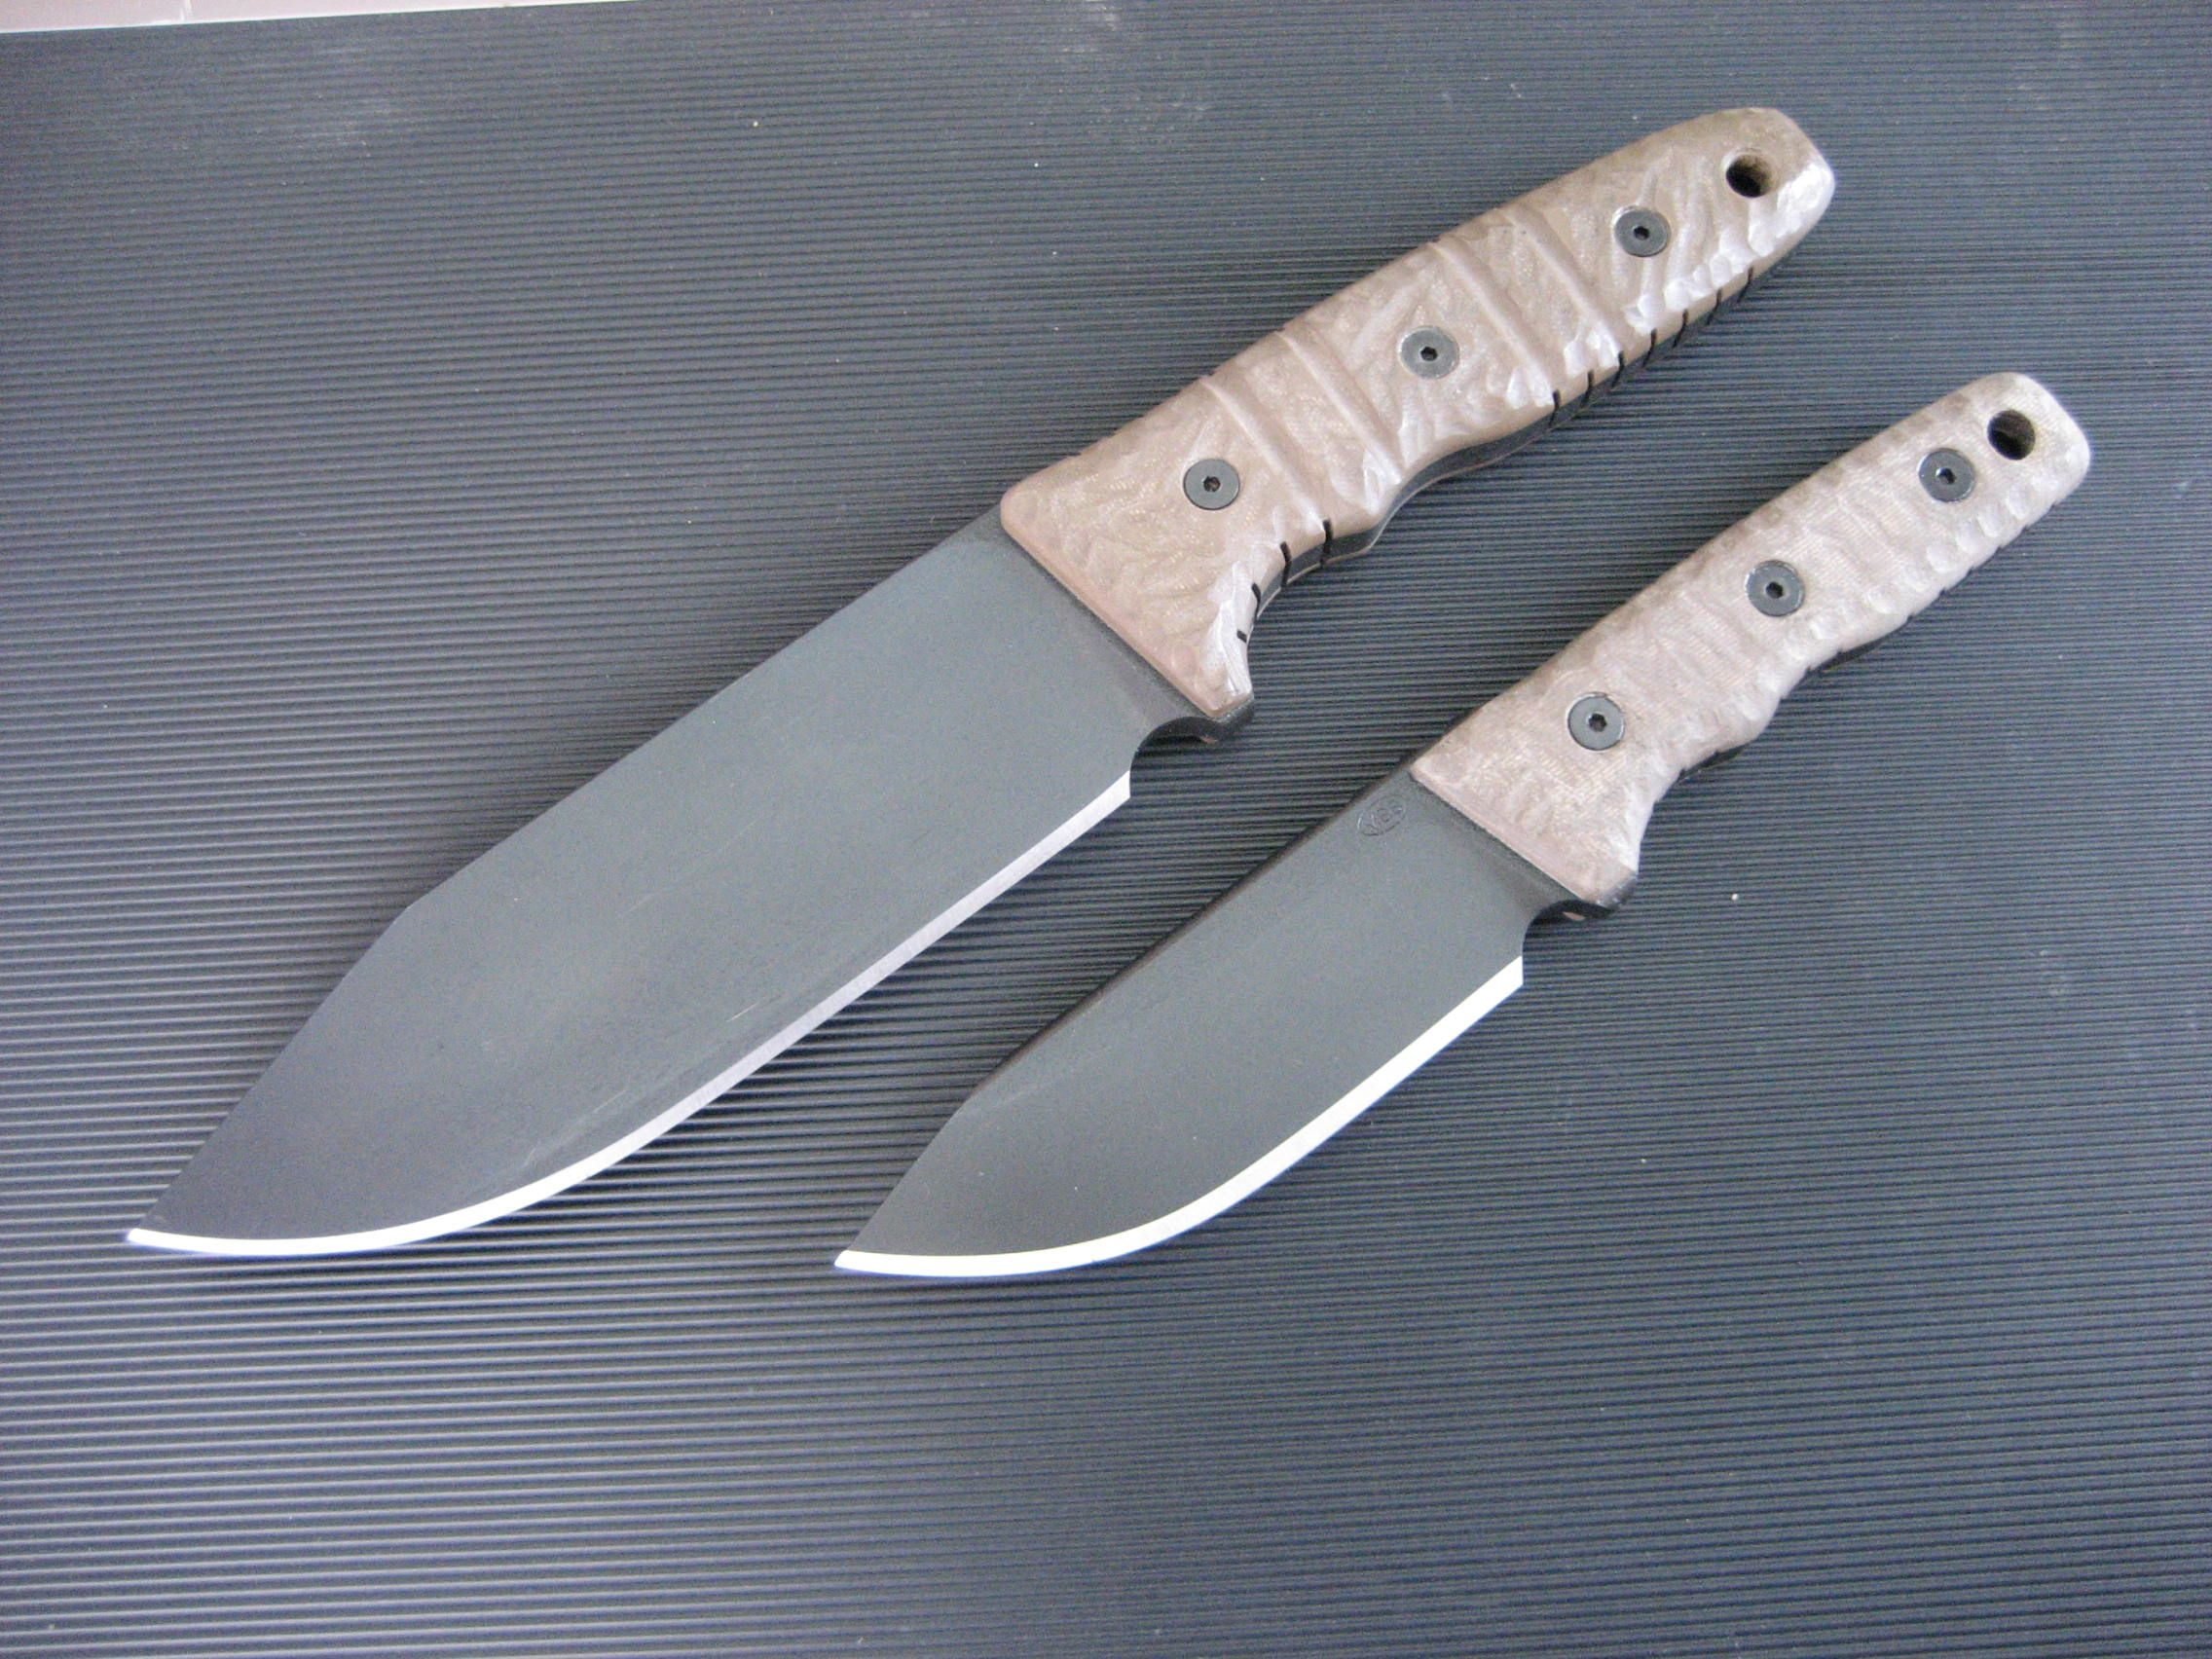 Miller Bros. Blades (MBB) M-8 with full flat grind (top) and new for 2014 M-8c (compact) pictured beneath.  Custom Handmade Swords, Knives & Tomahawks/Axes http://www.millerbrosblades.com/